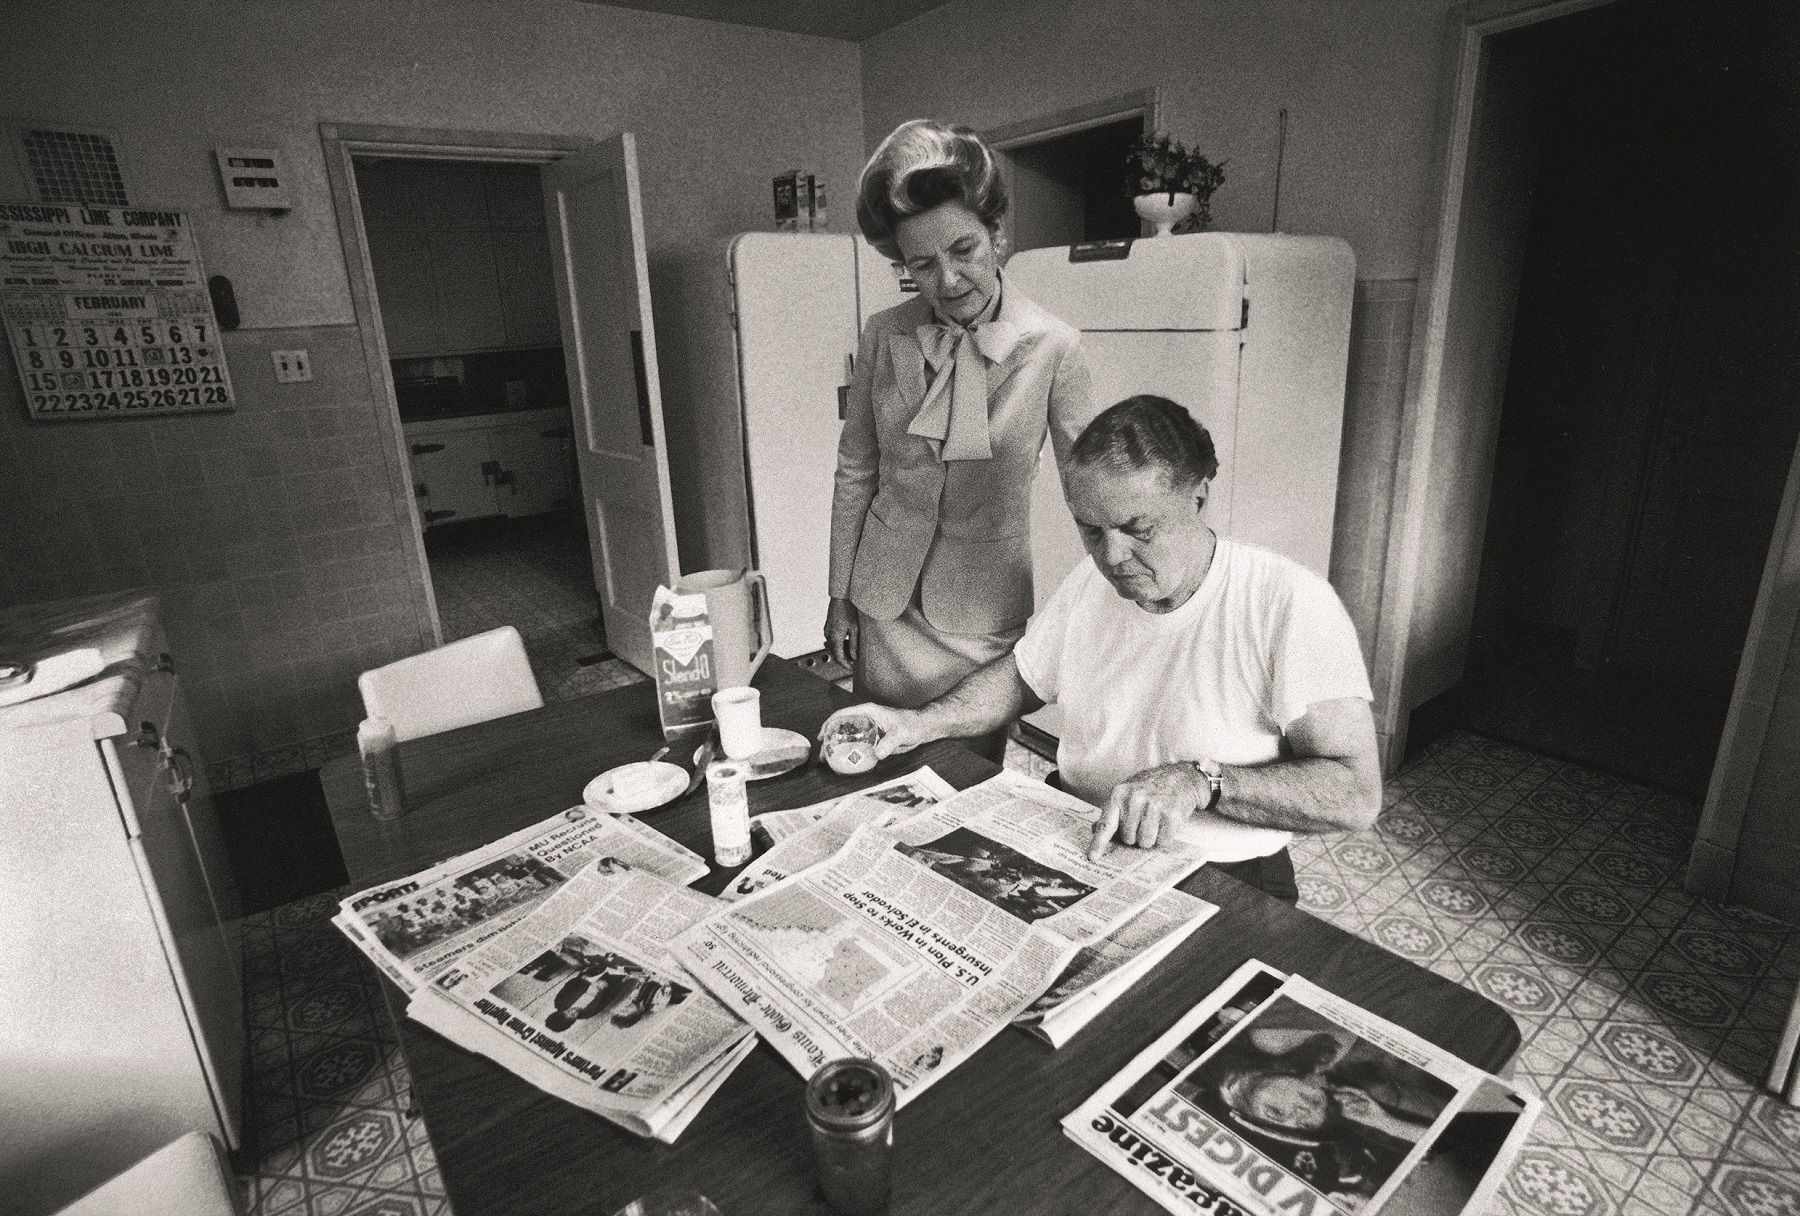 ALTON, UNITED STATES - JANUARY 01:  ERA opponent Phyllis Schlafly with her husband Fred at home.  (Photo by Thomas S. England/The LIFE Images Collection via Getty Images/Getty Images)